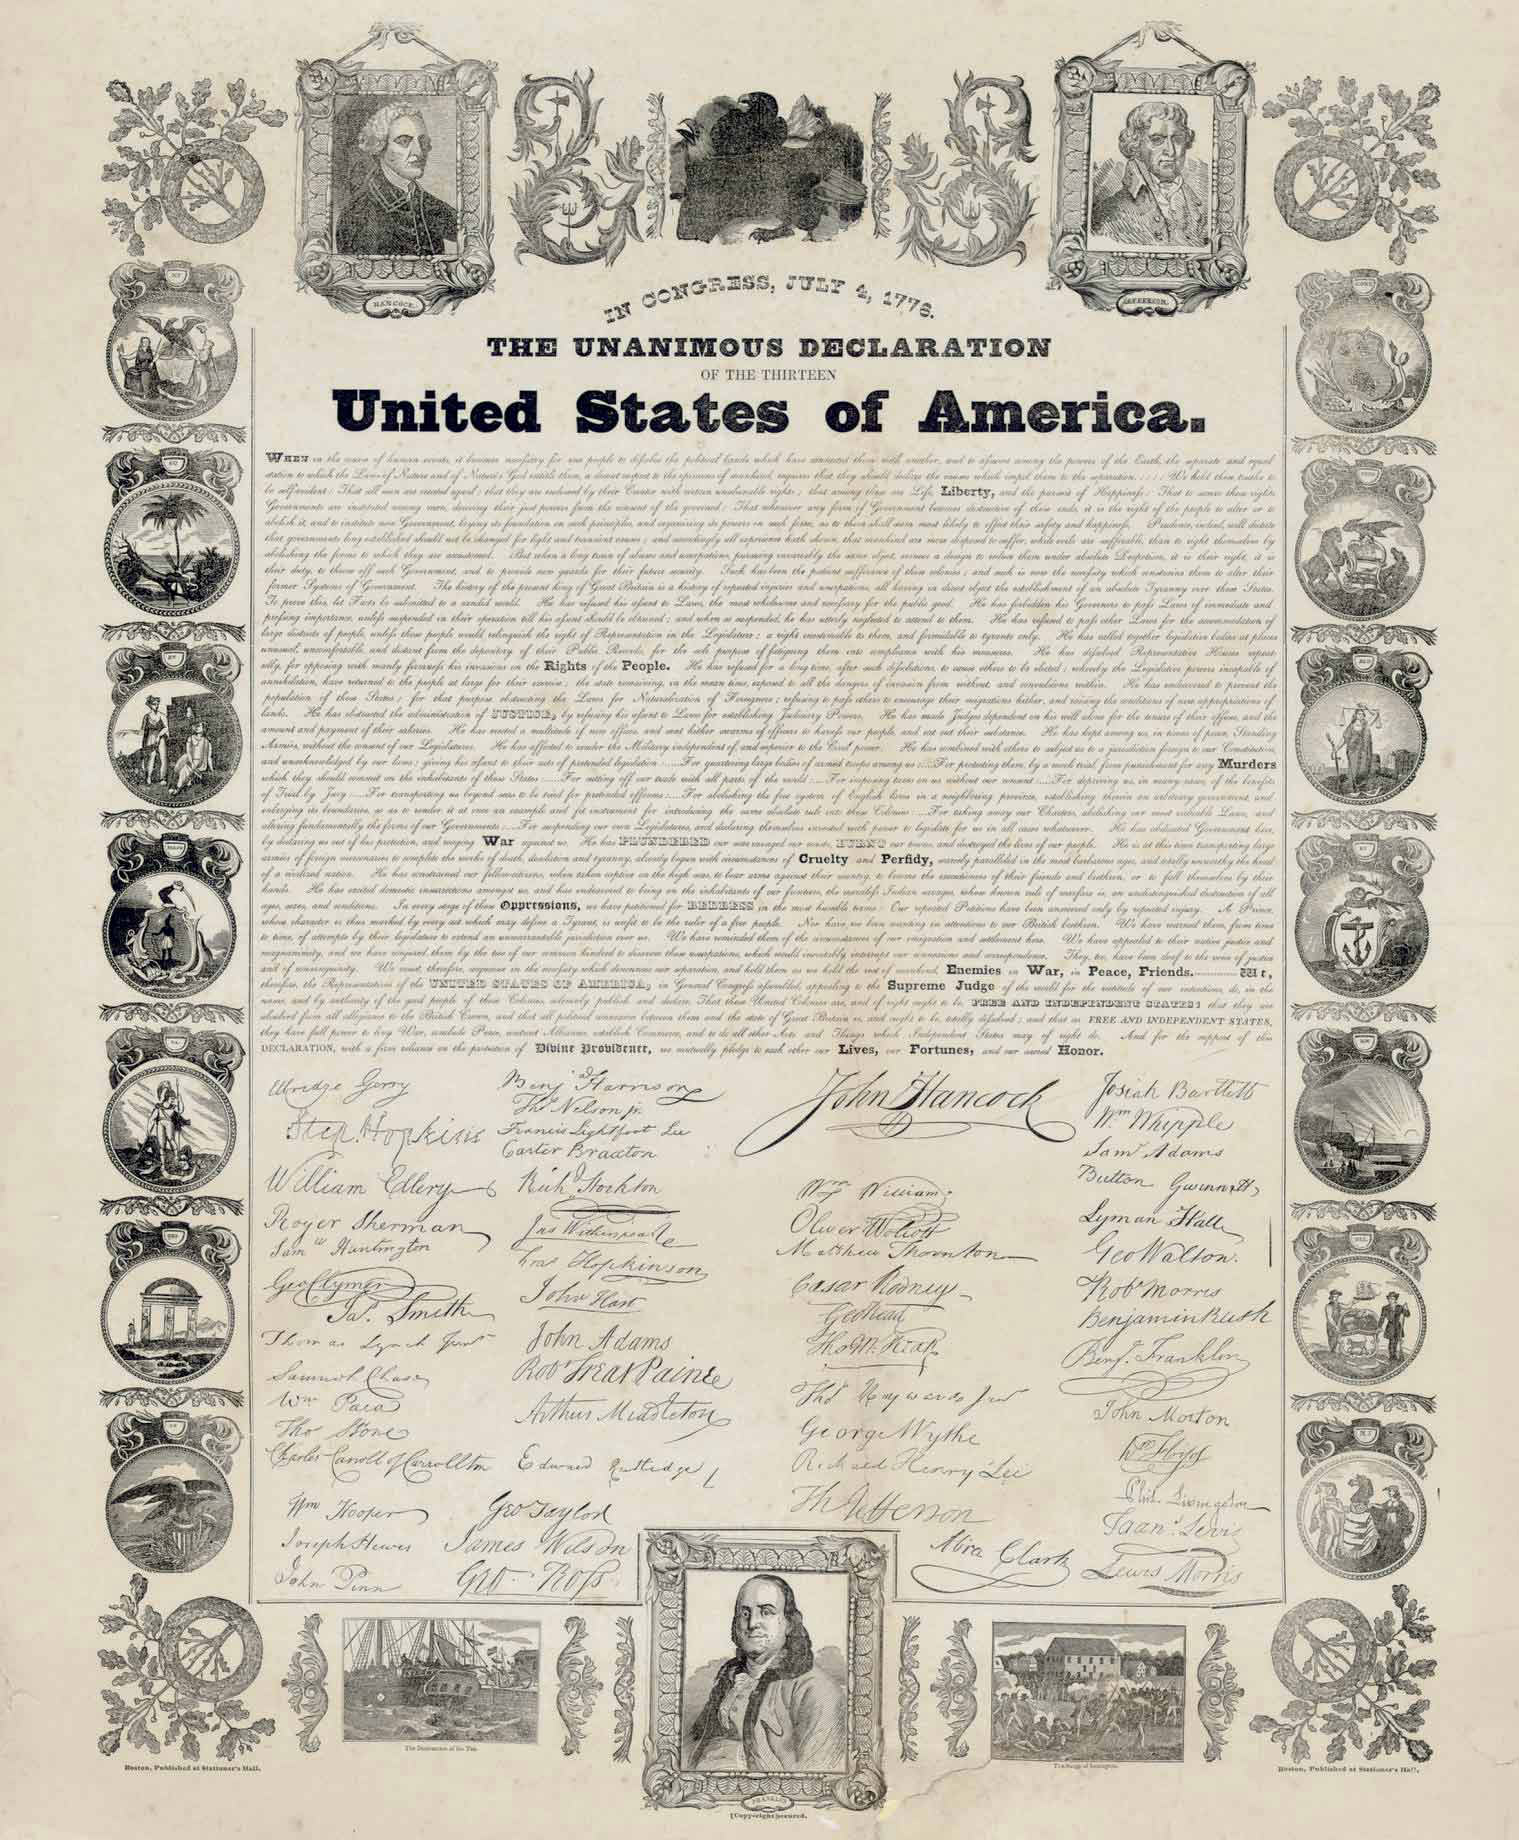 DECLARATION OF INDEPENDENCE. In Congress, July 4, 1776. The Unanimous Declaration of the Thirteen United States of America. When in the Course of Human Events...  Boston: Published at Stationer's Hall, n.d. [1840-1850].